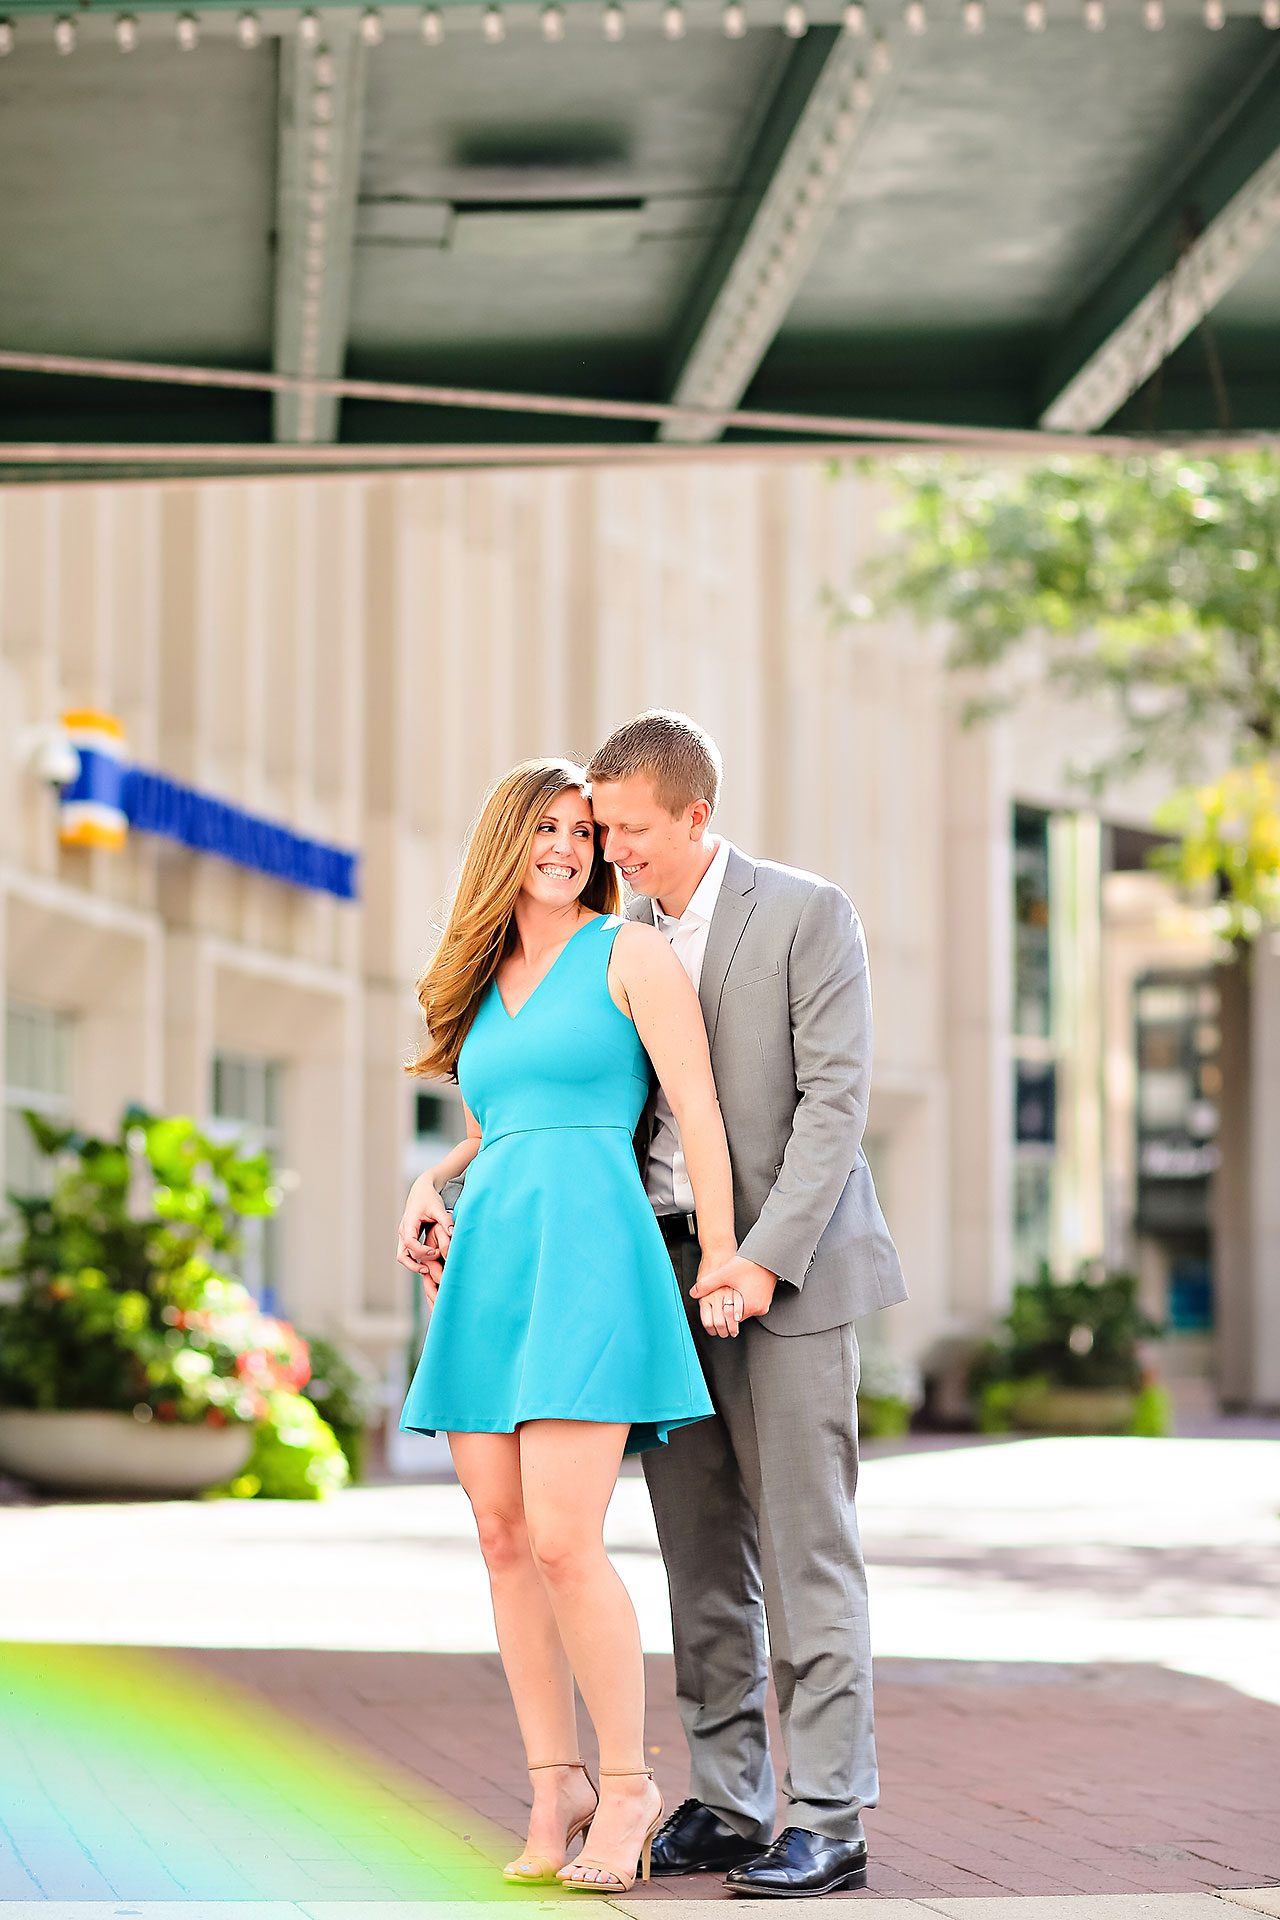 Chelsea Jeff Downtown Indy Engagement Session 064